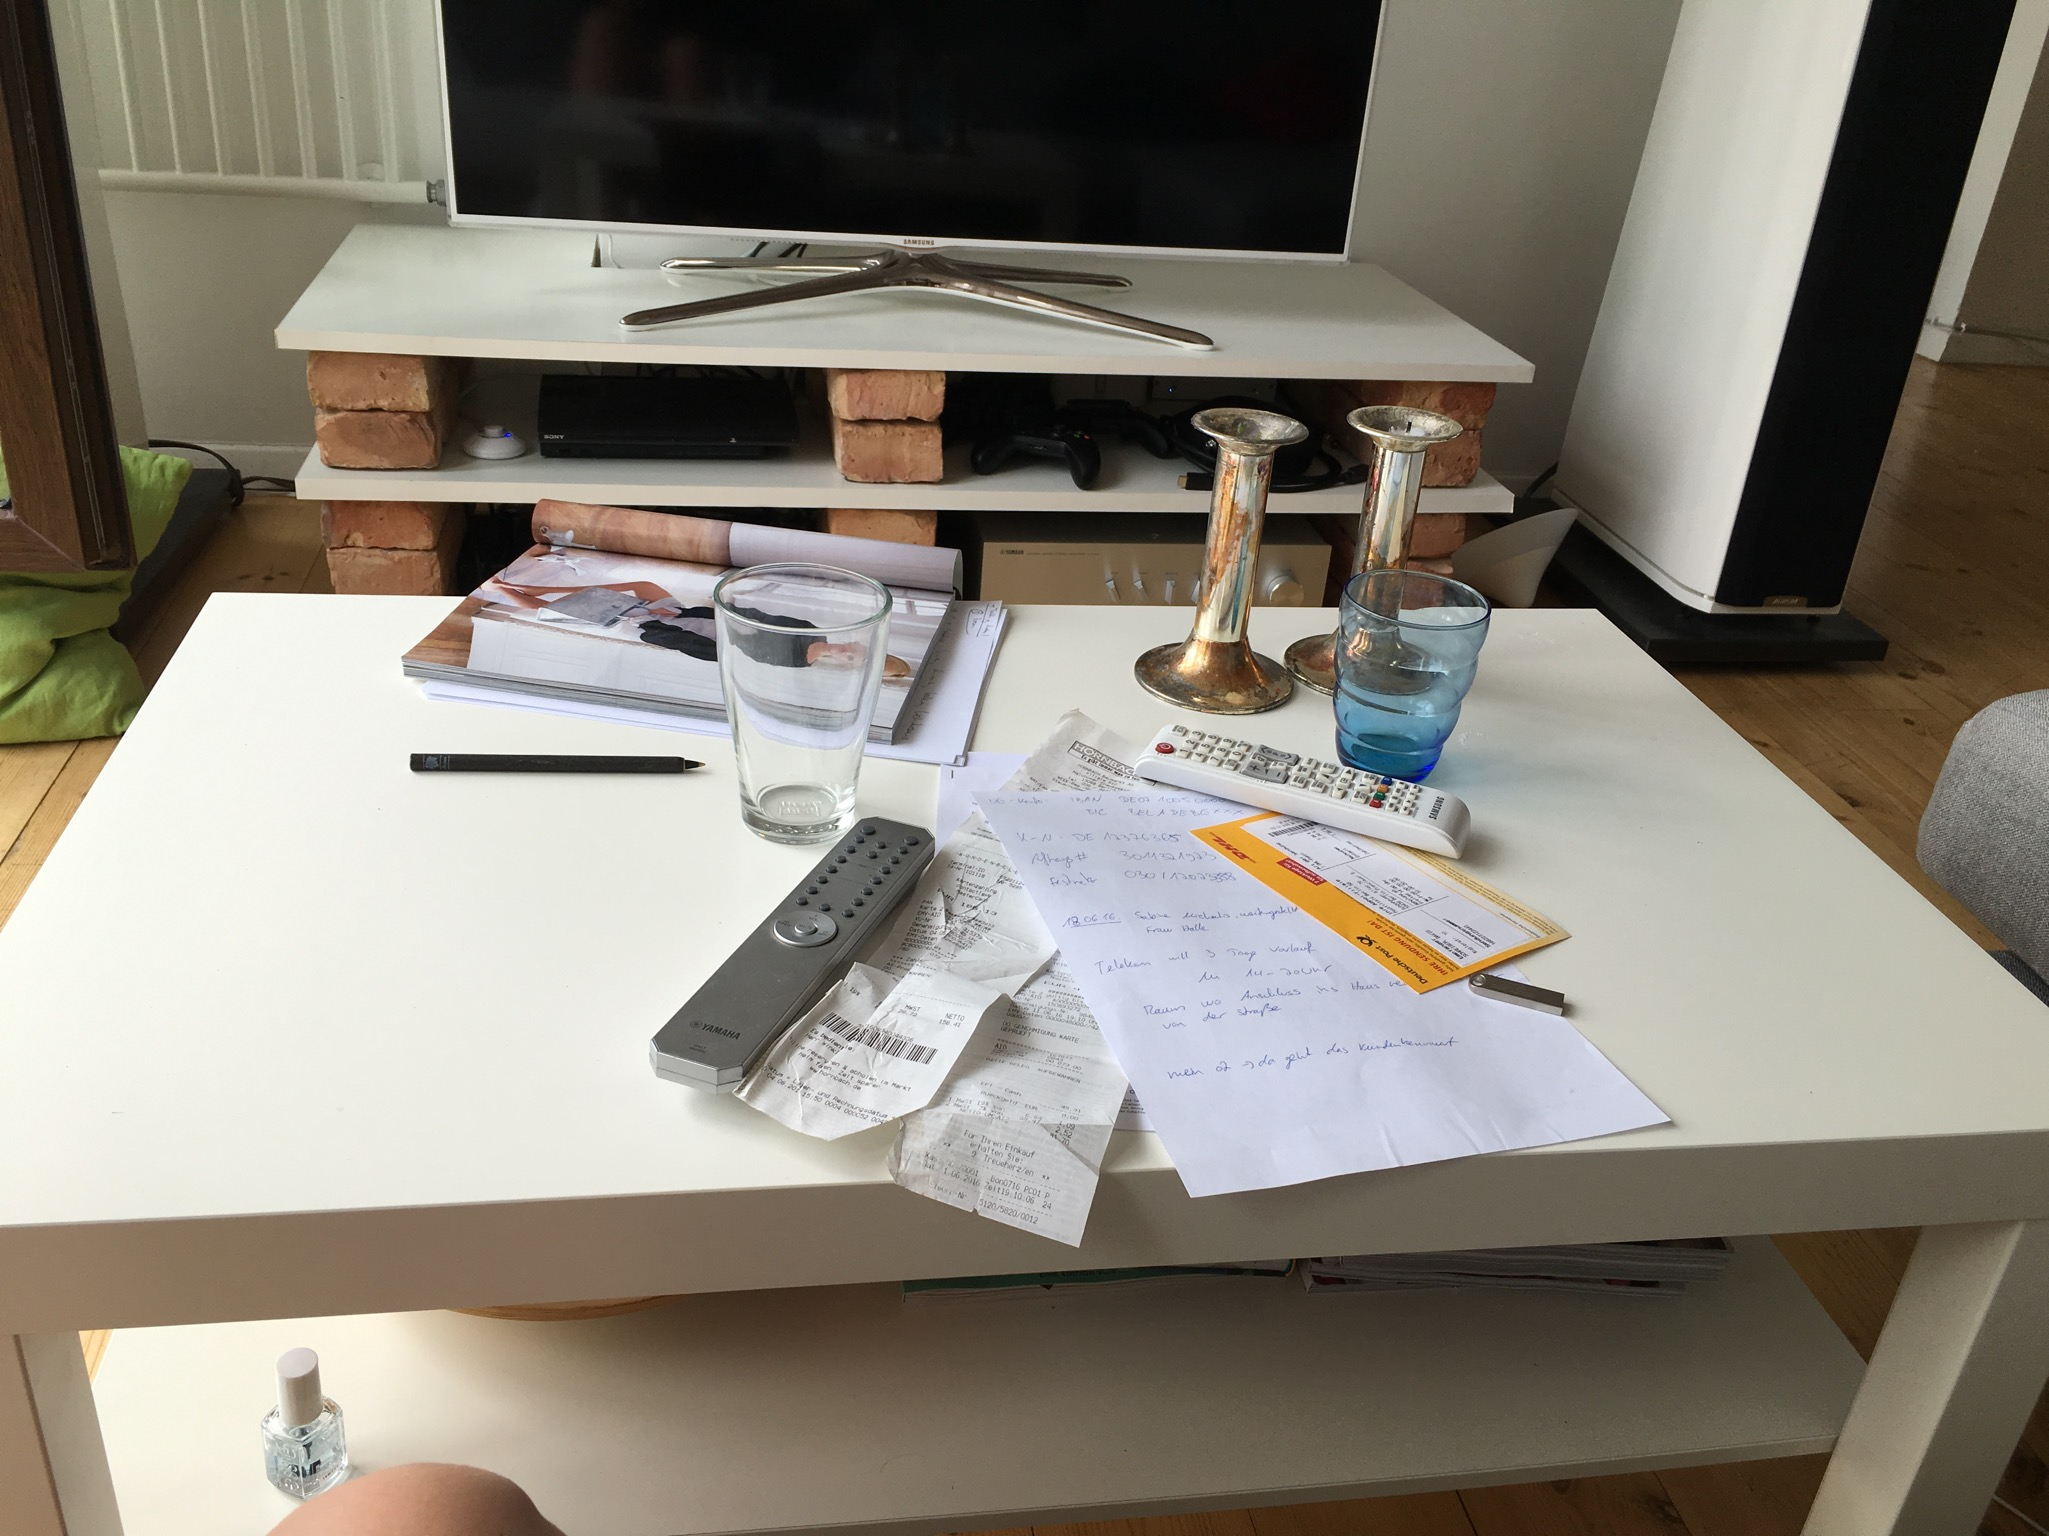 Real life mess on real life table that sometimes doubles as my Instagram photo shoot studio.